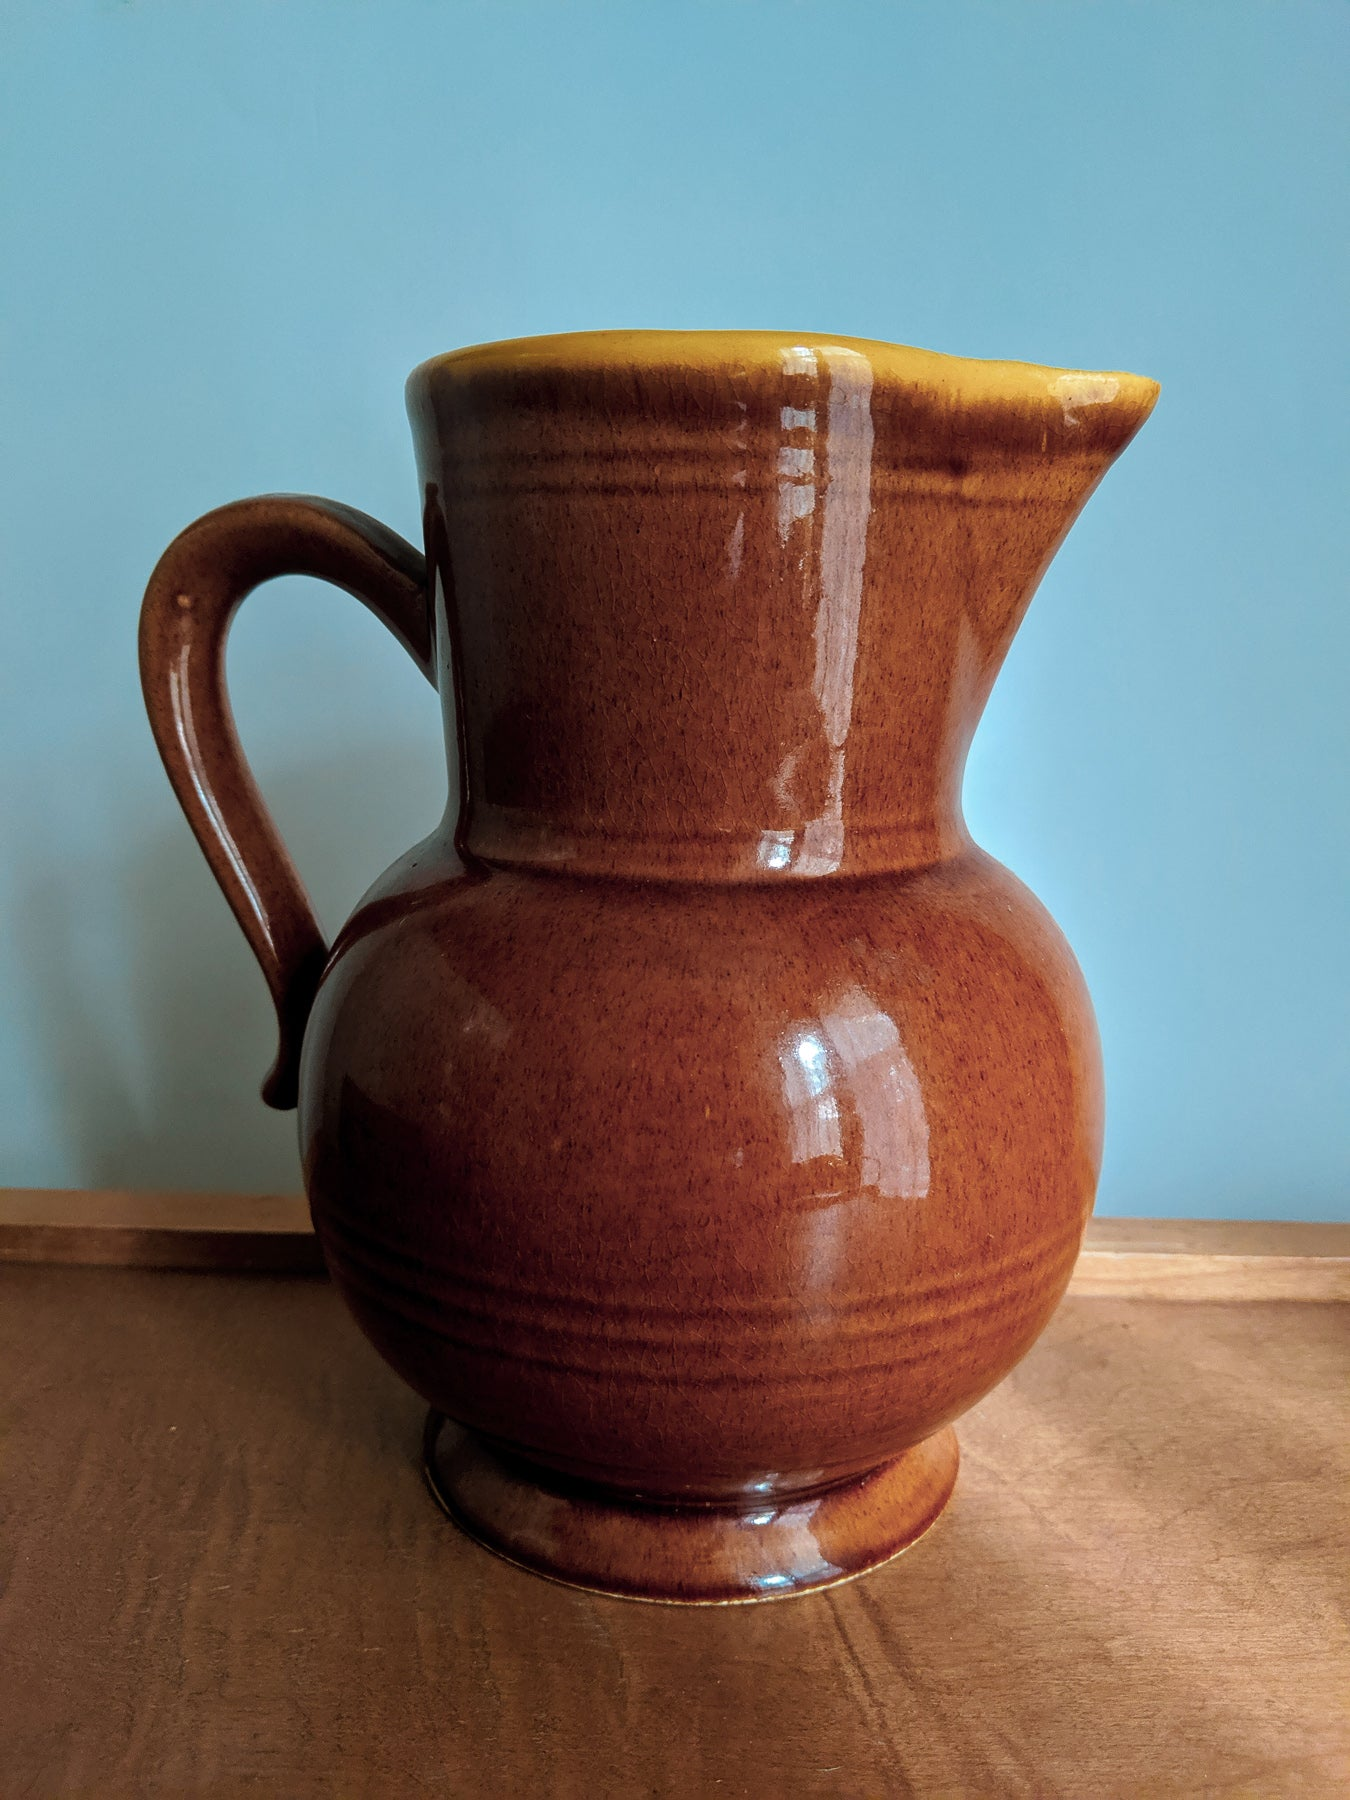 Pichet en céramique / ceramic pitcher